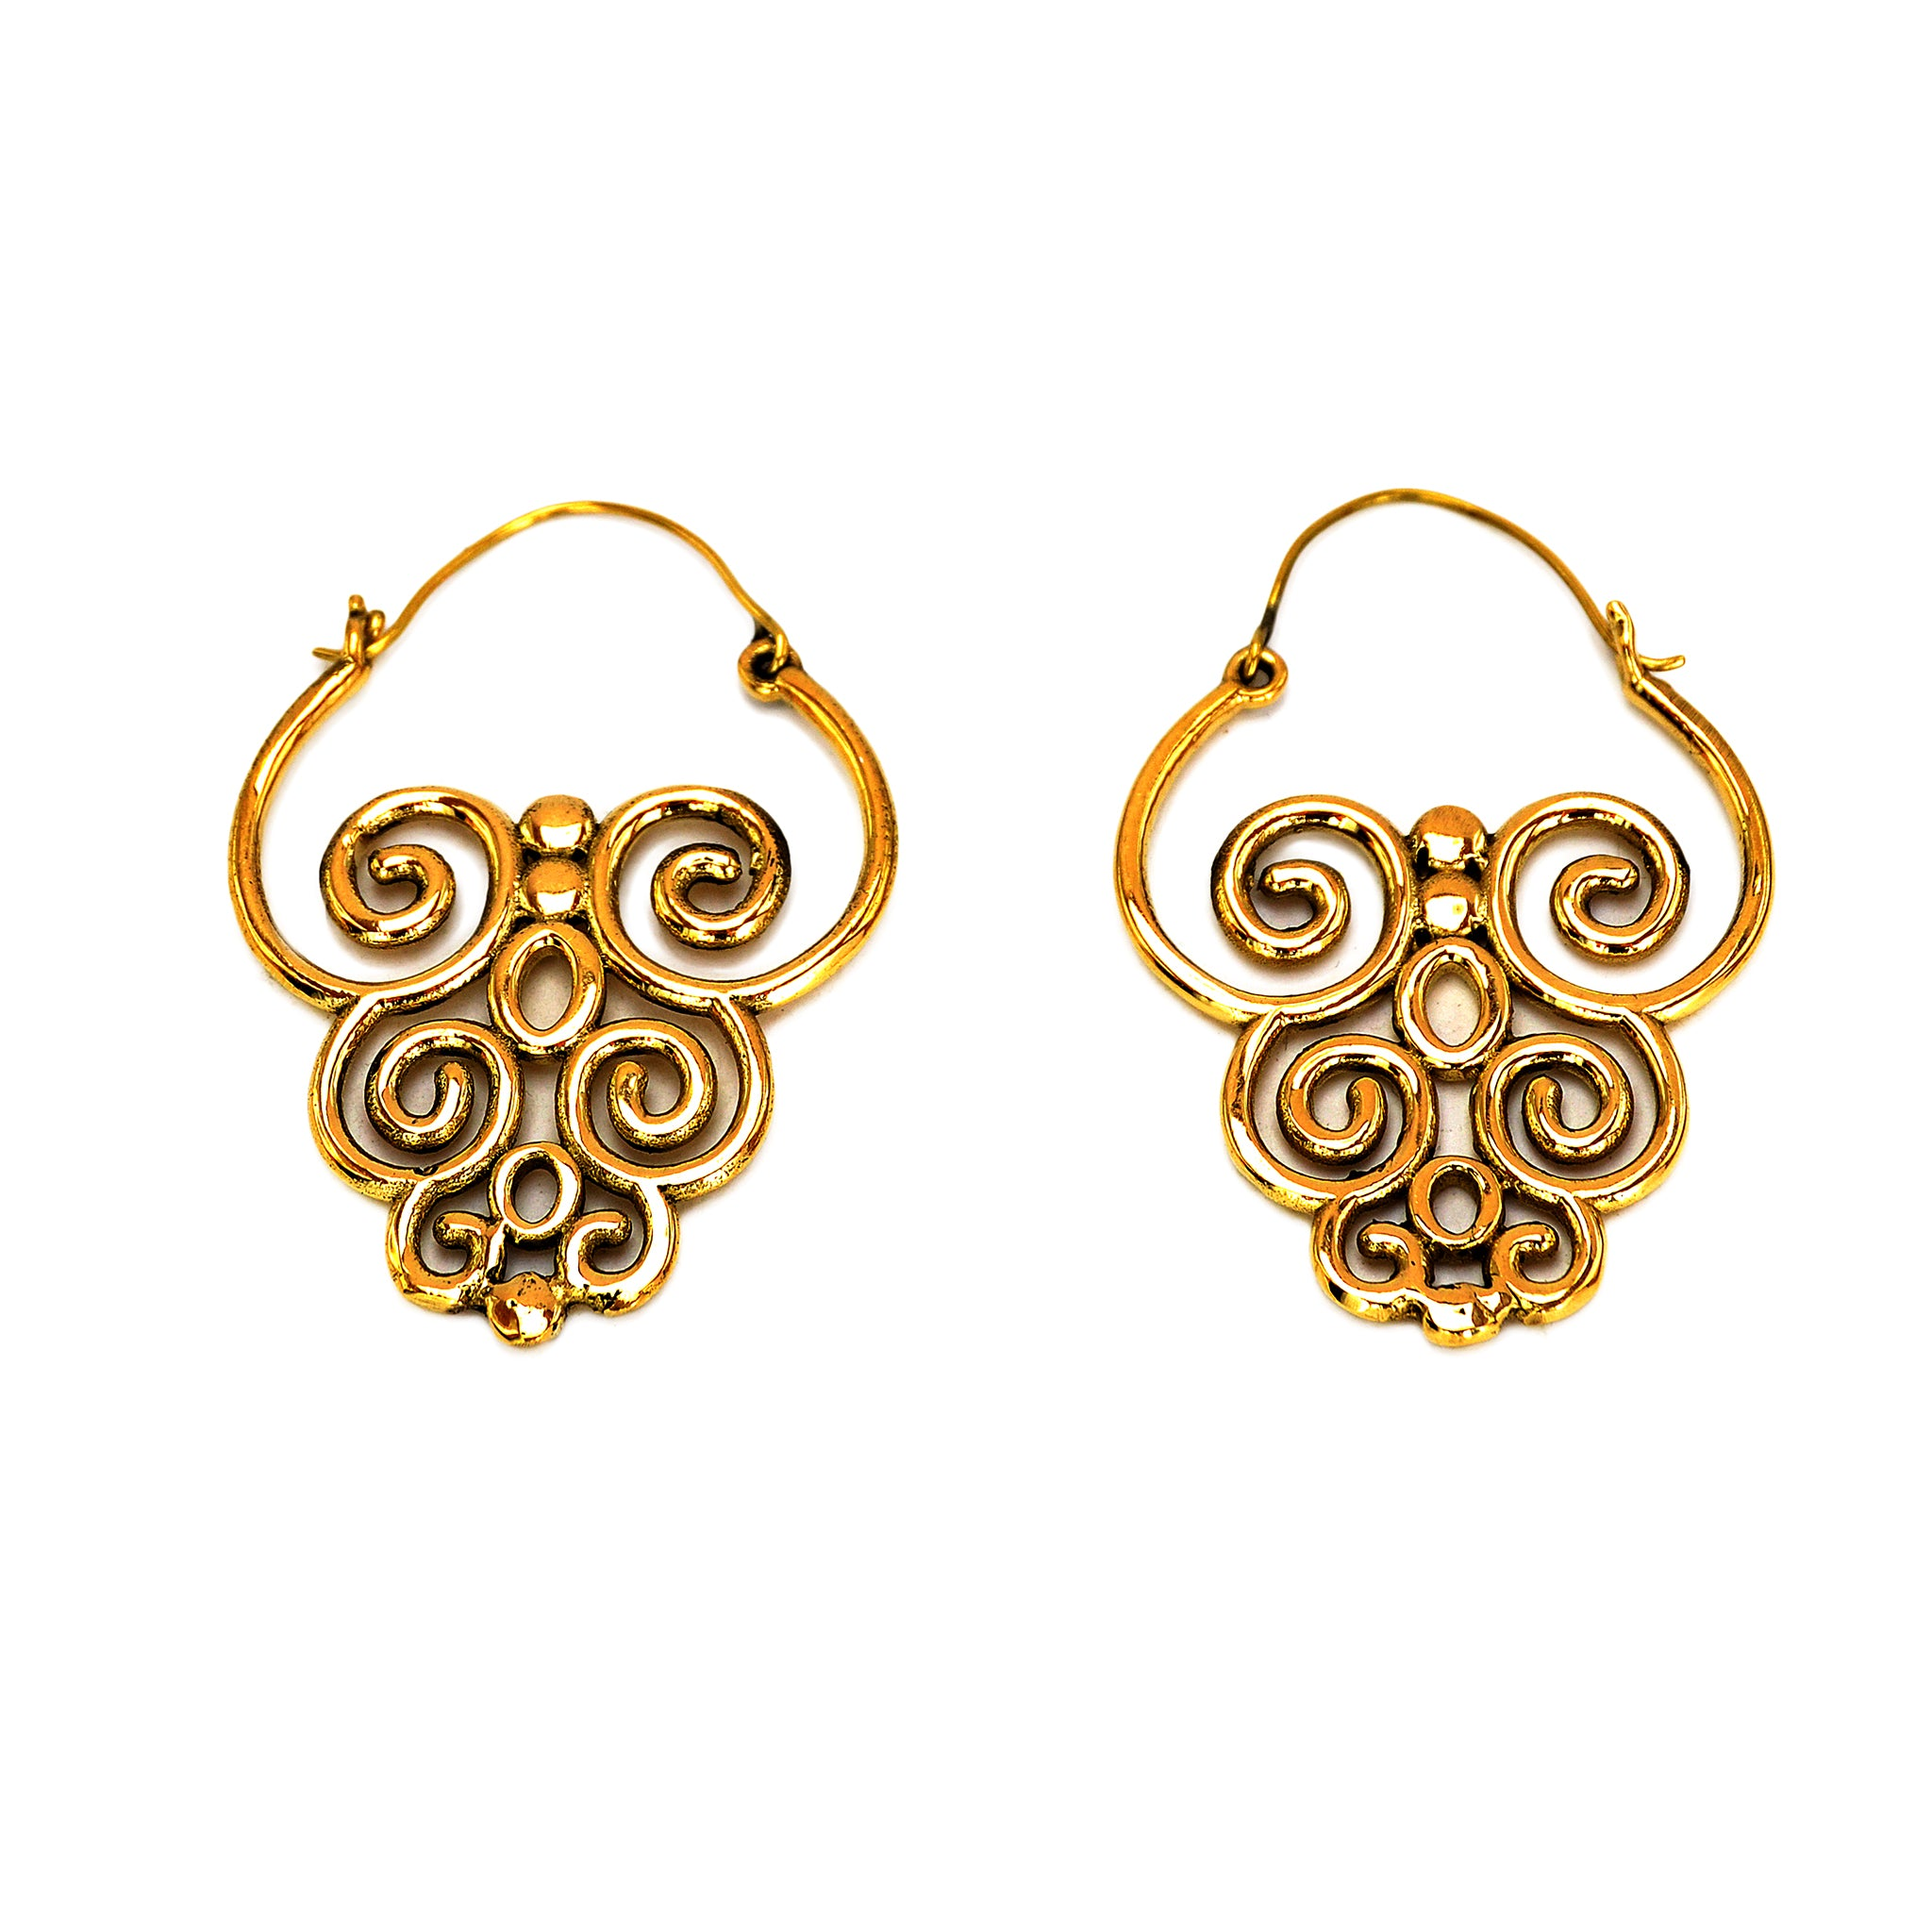 Ethnic brass earrings